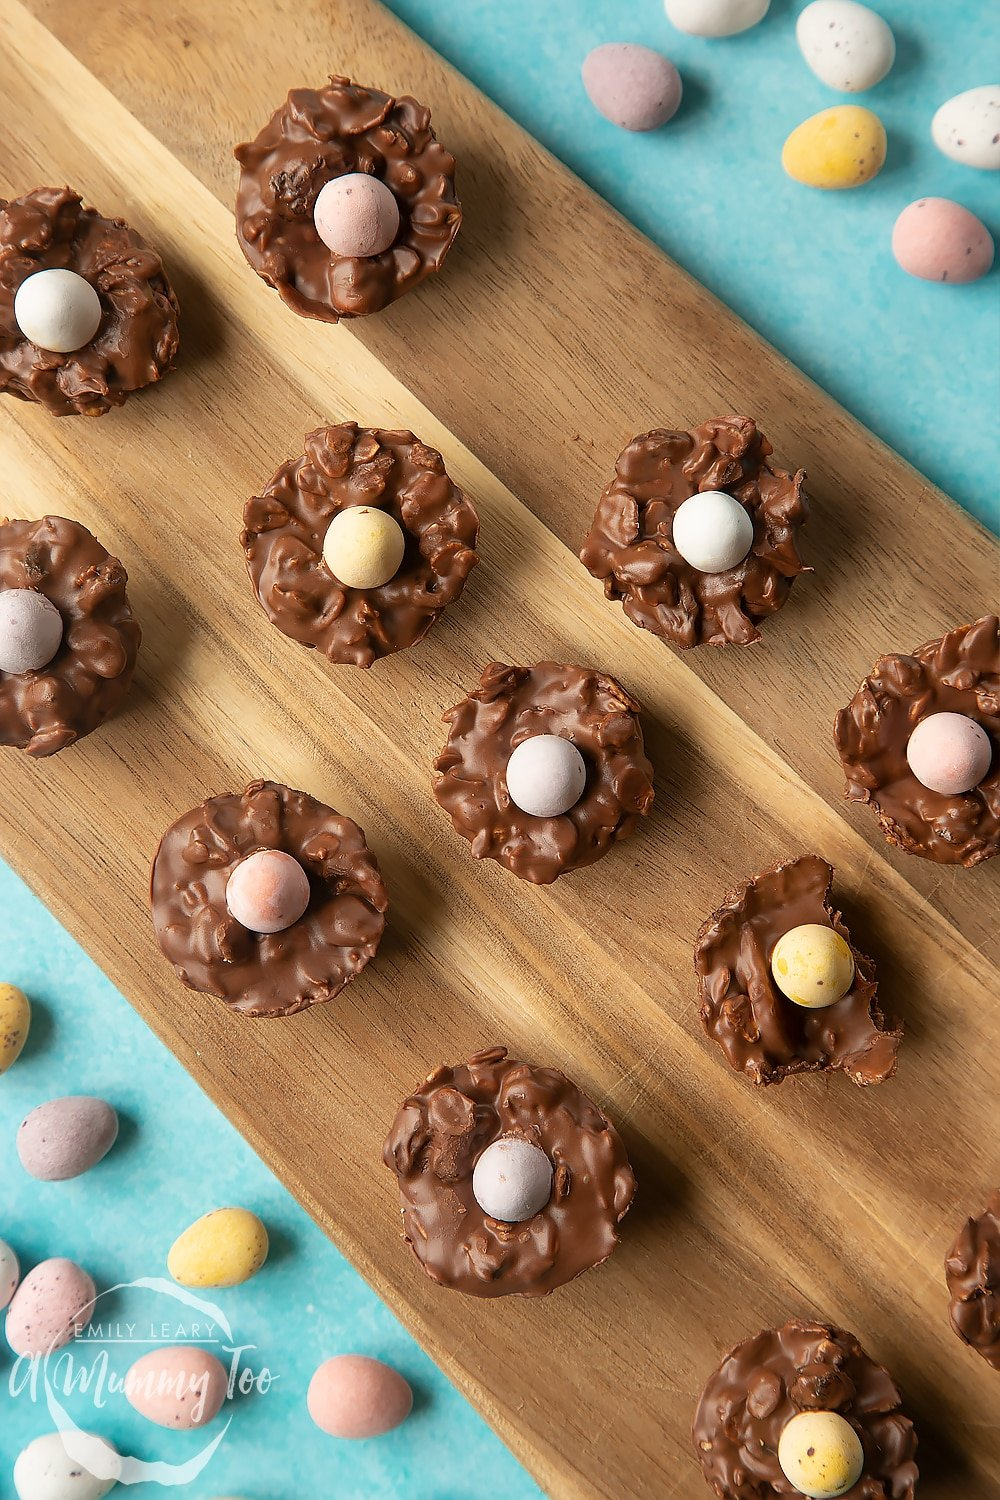 Overhead shot of a hand holding a chocolate Easter nest cakes on a wooden board.